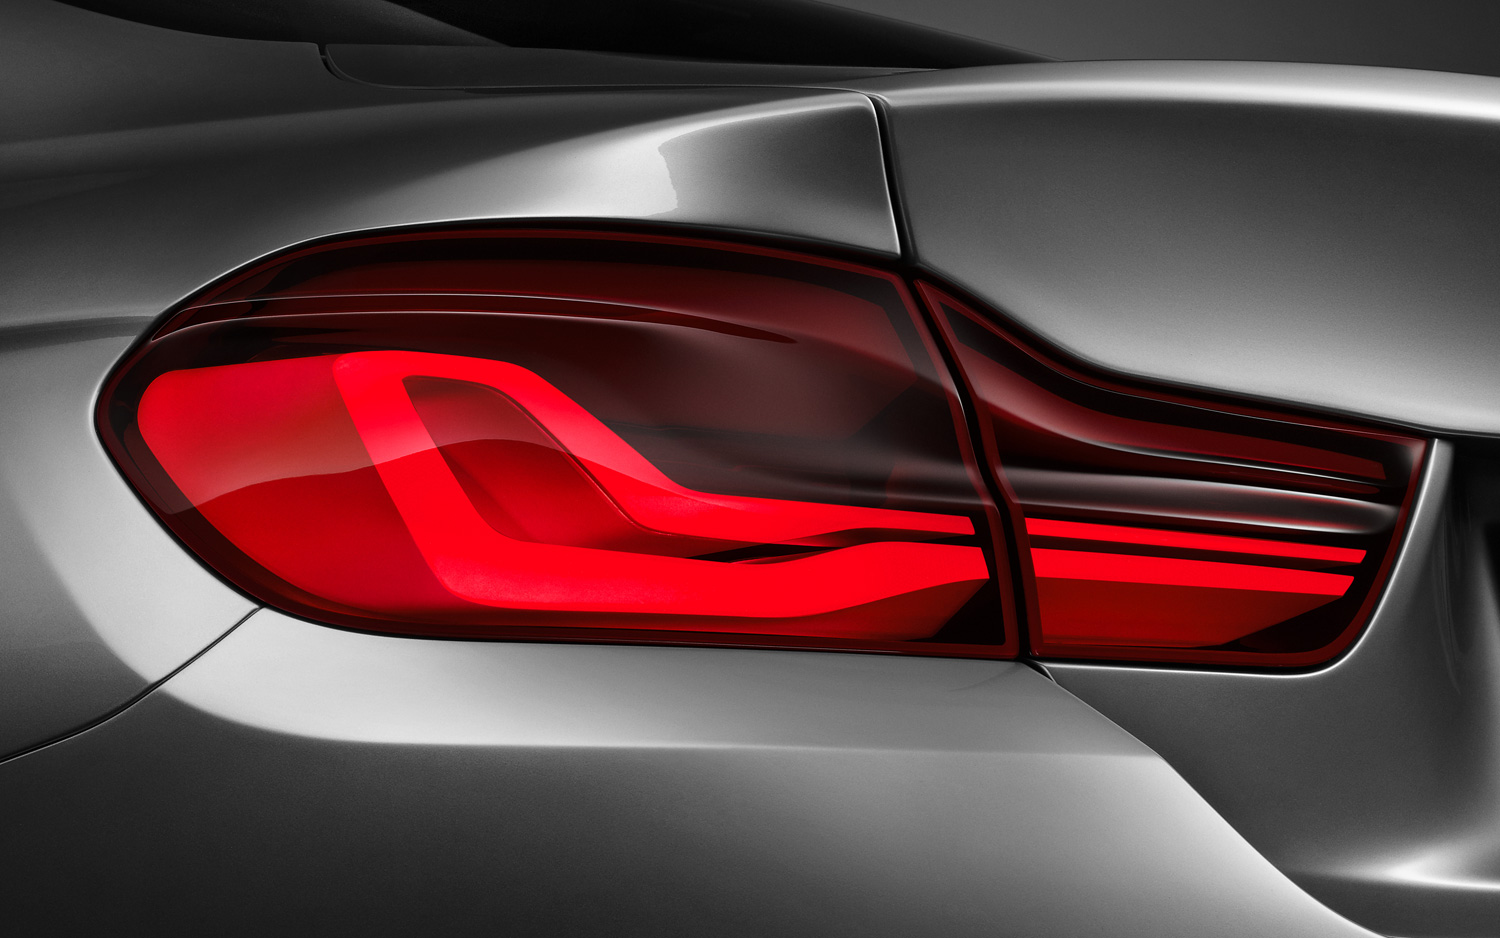 BMW 4 Series Coupe concept taillight in studio